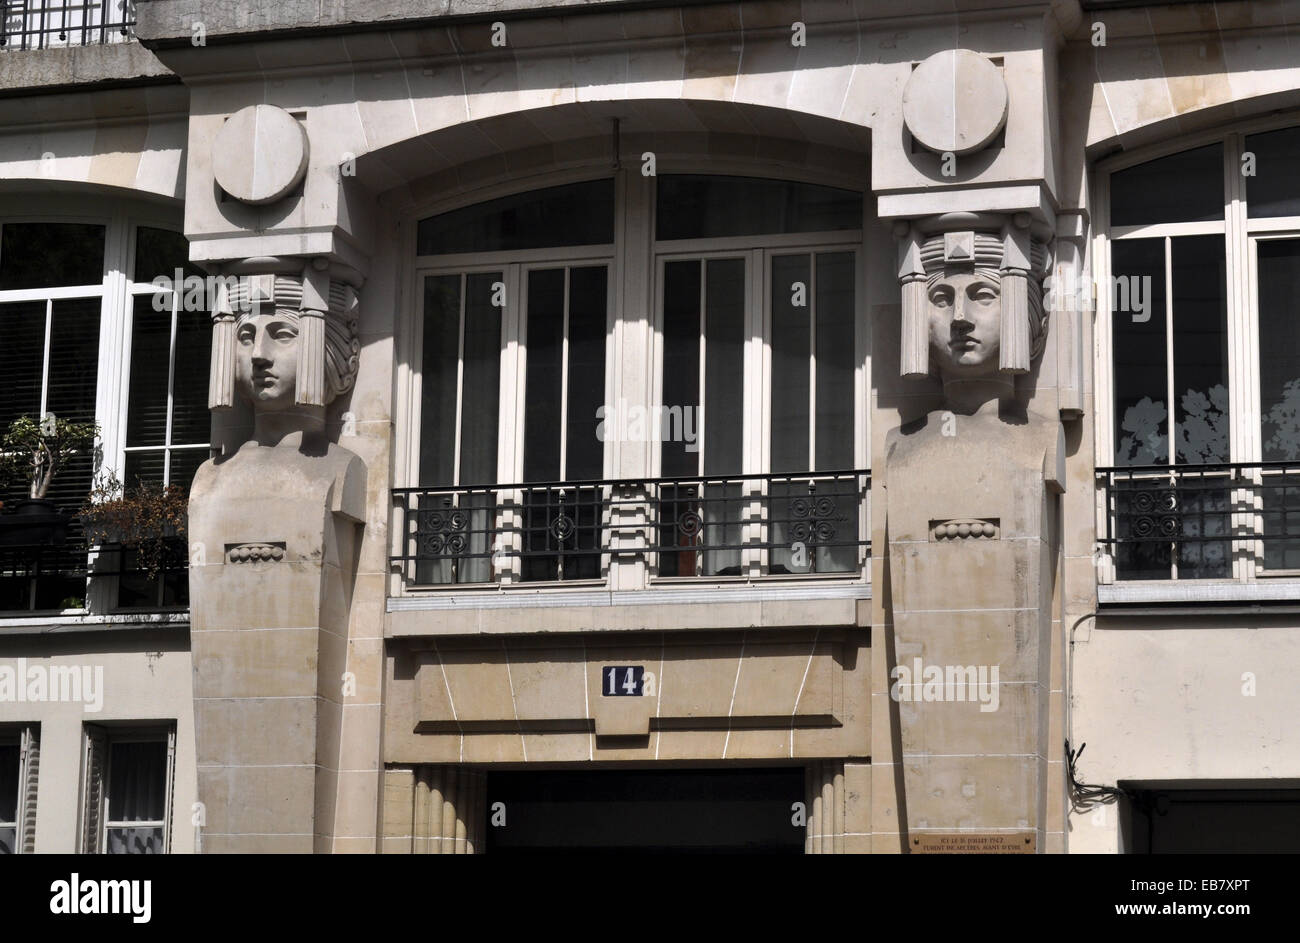 Paris, France, Art Deco with Egyptian influence - Stock Image